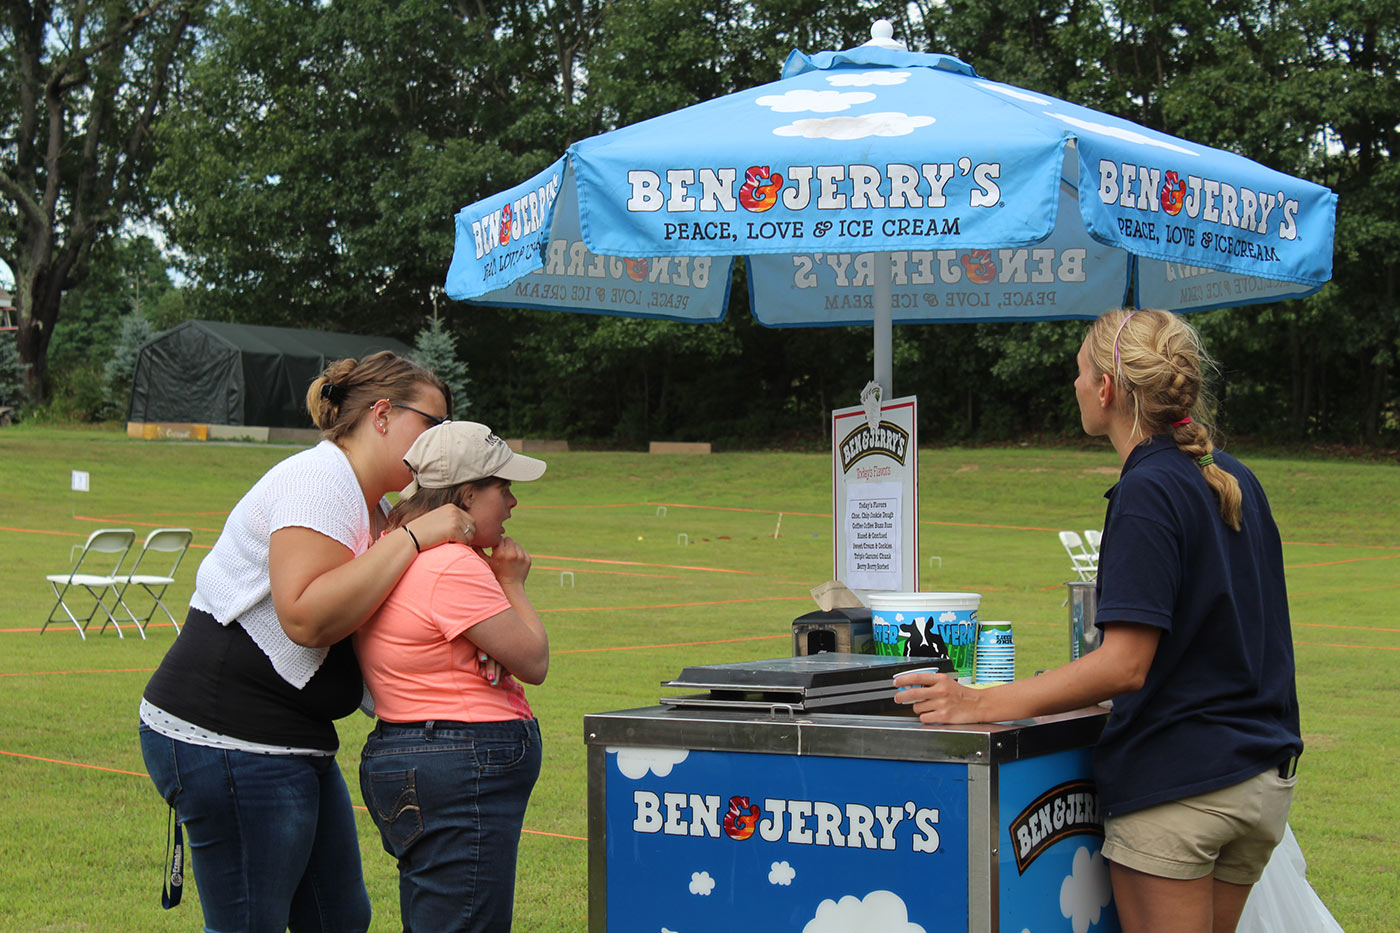 two women going up to ben and jerrys cart to grab some ice cream